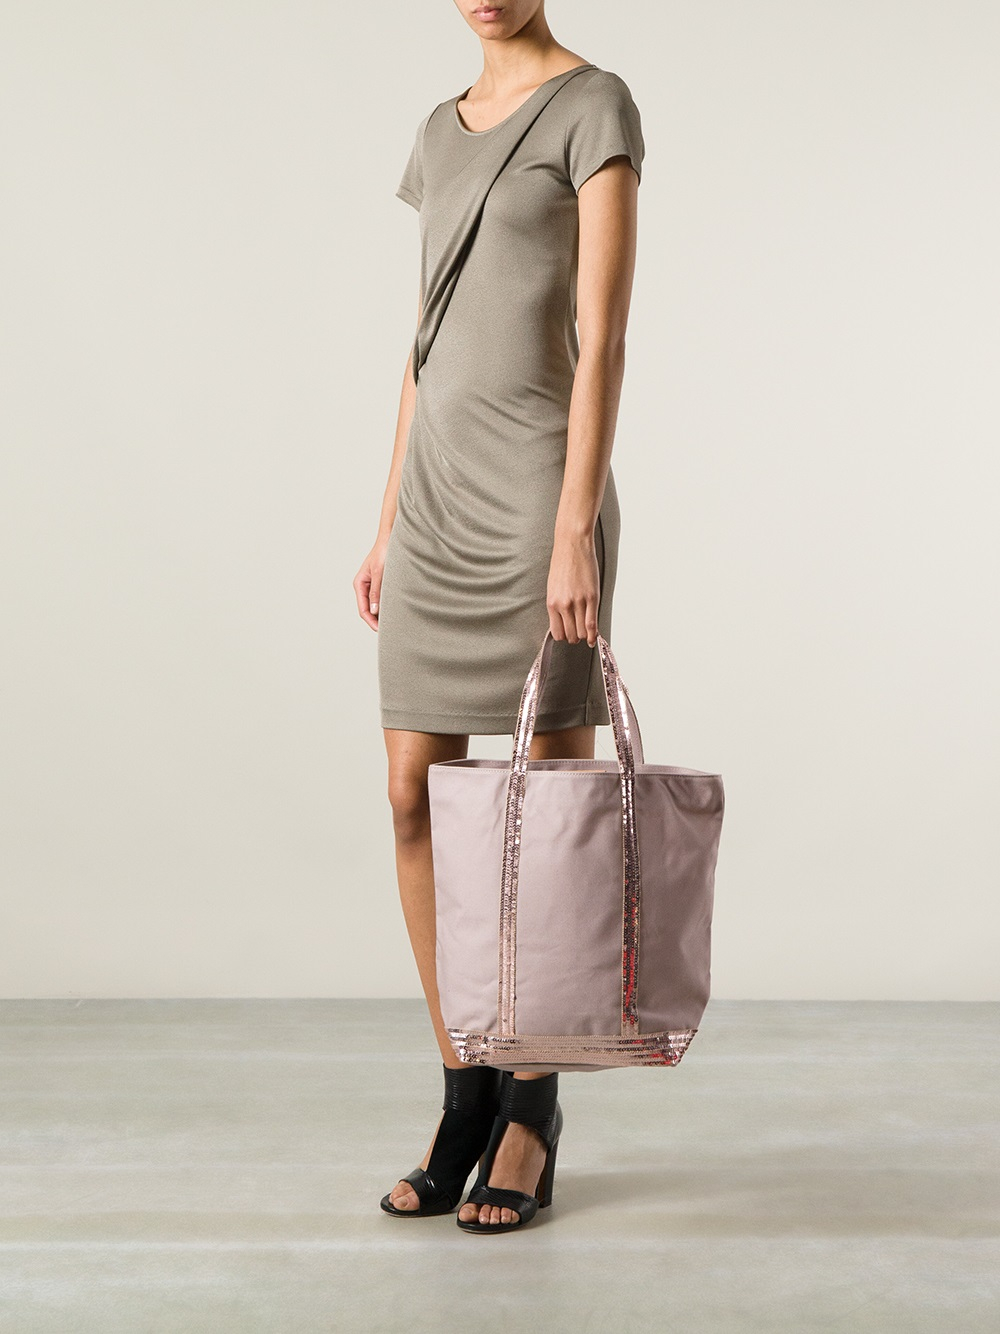 lyst vanessa bruno long tote bag in pink